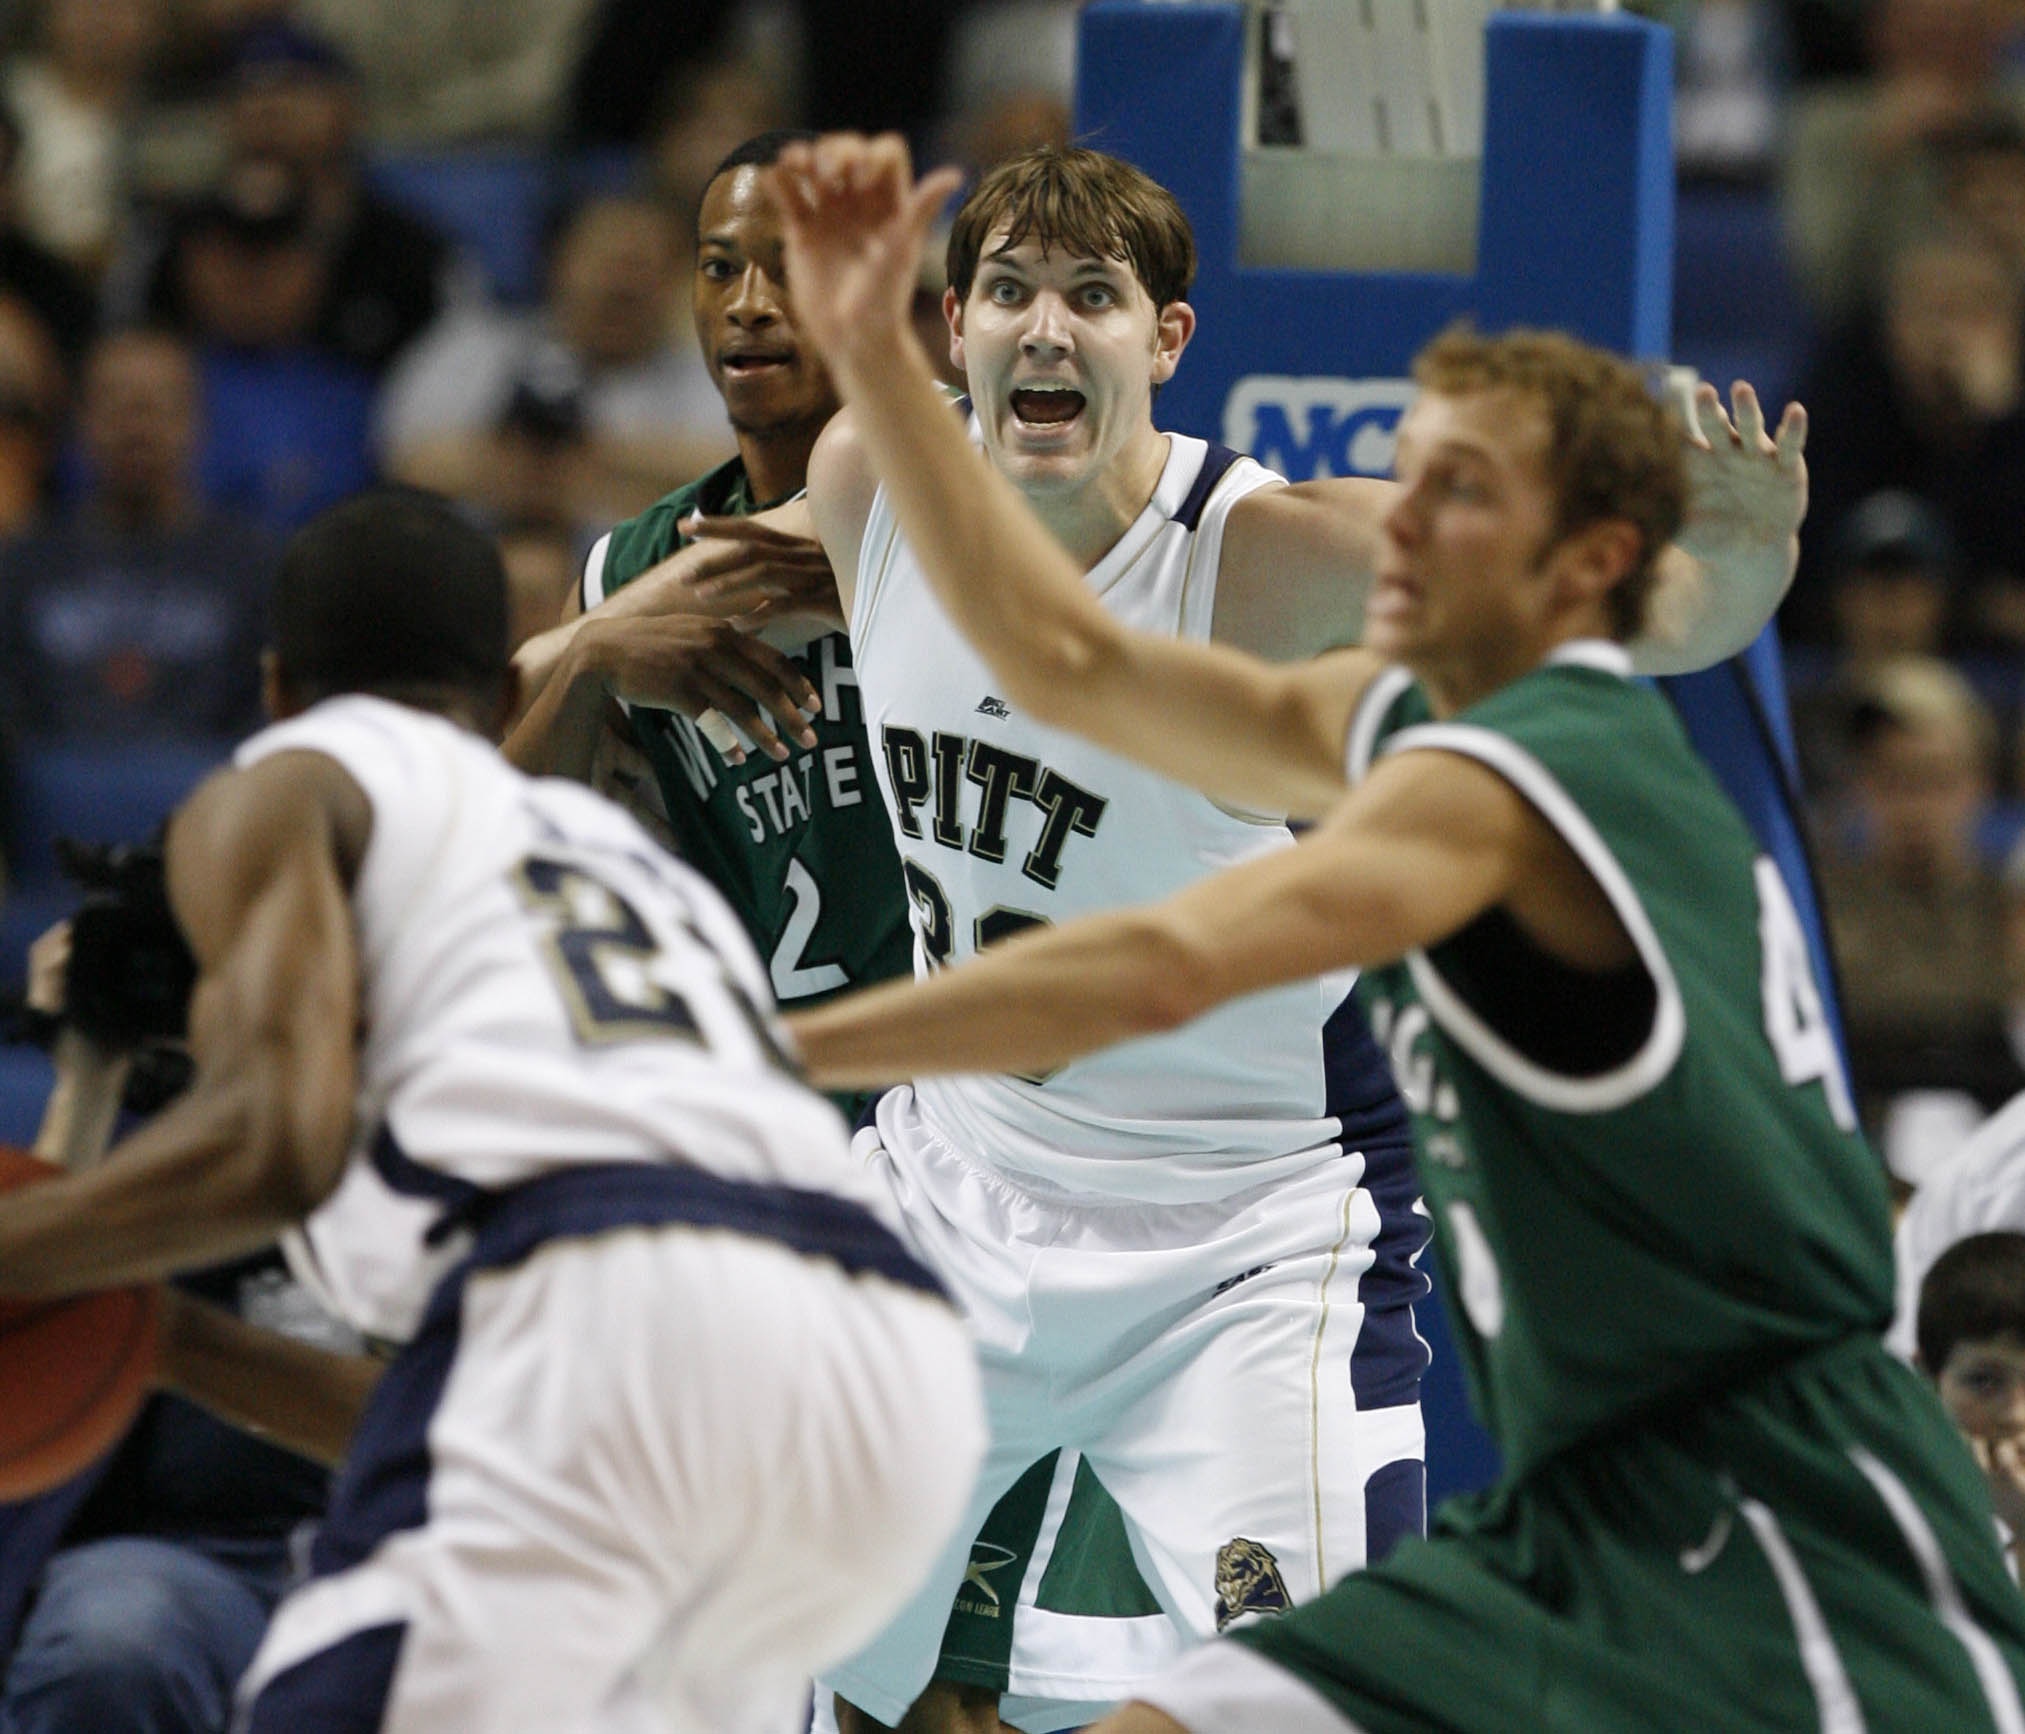 Aaron Gray looks for the pass inside during the first half of their game with Wright State.  (Mark Mulville/Buffalo News)